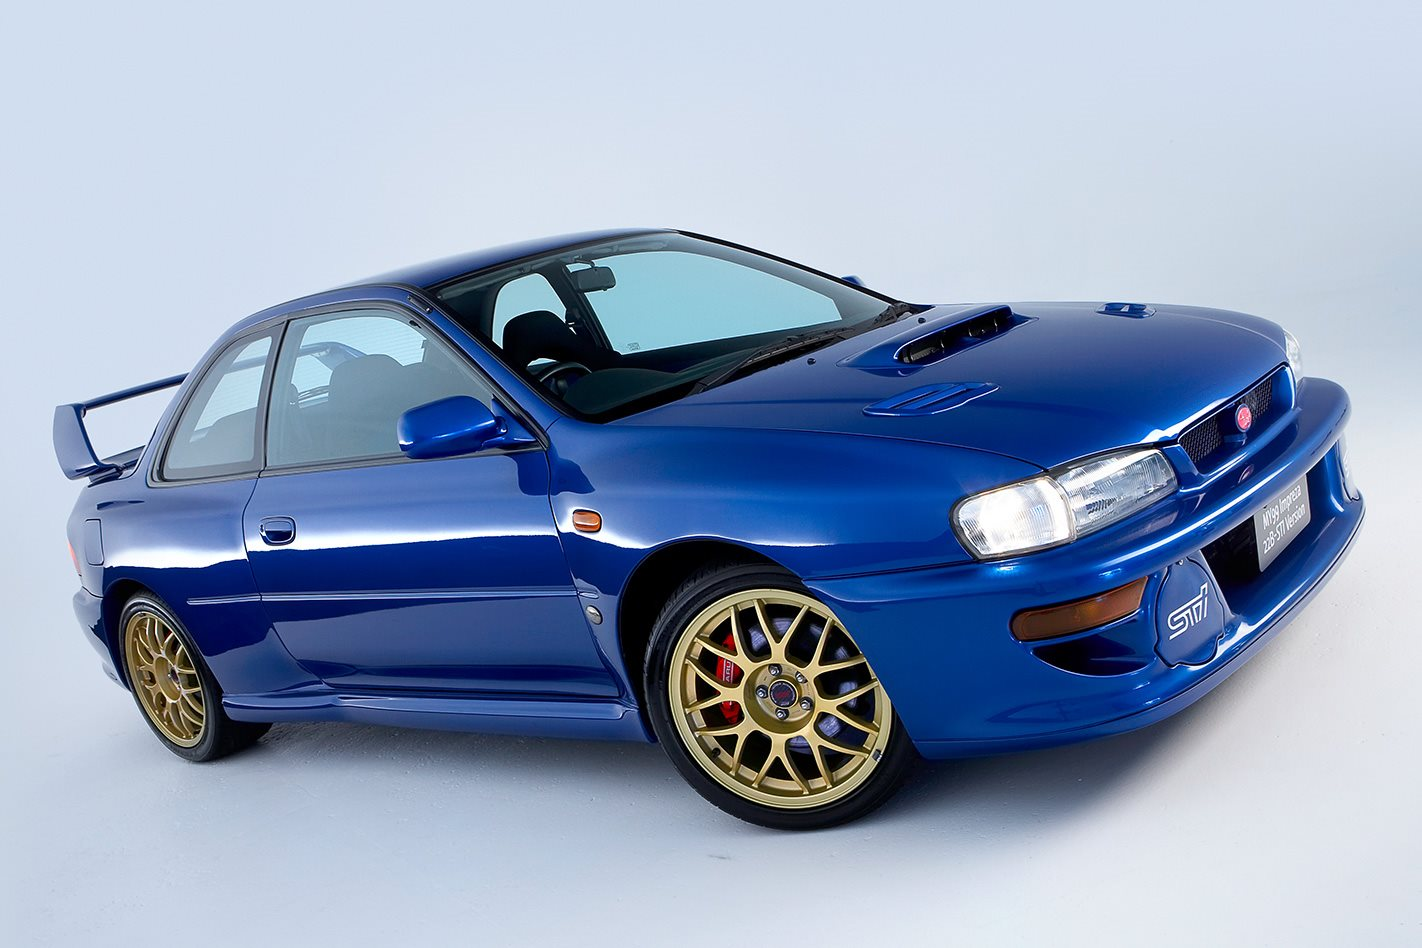 1999 subaru 22b sti greatest impreza ever motor. Black Bedroom Furniture Sets. Home Design Ideas